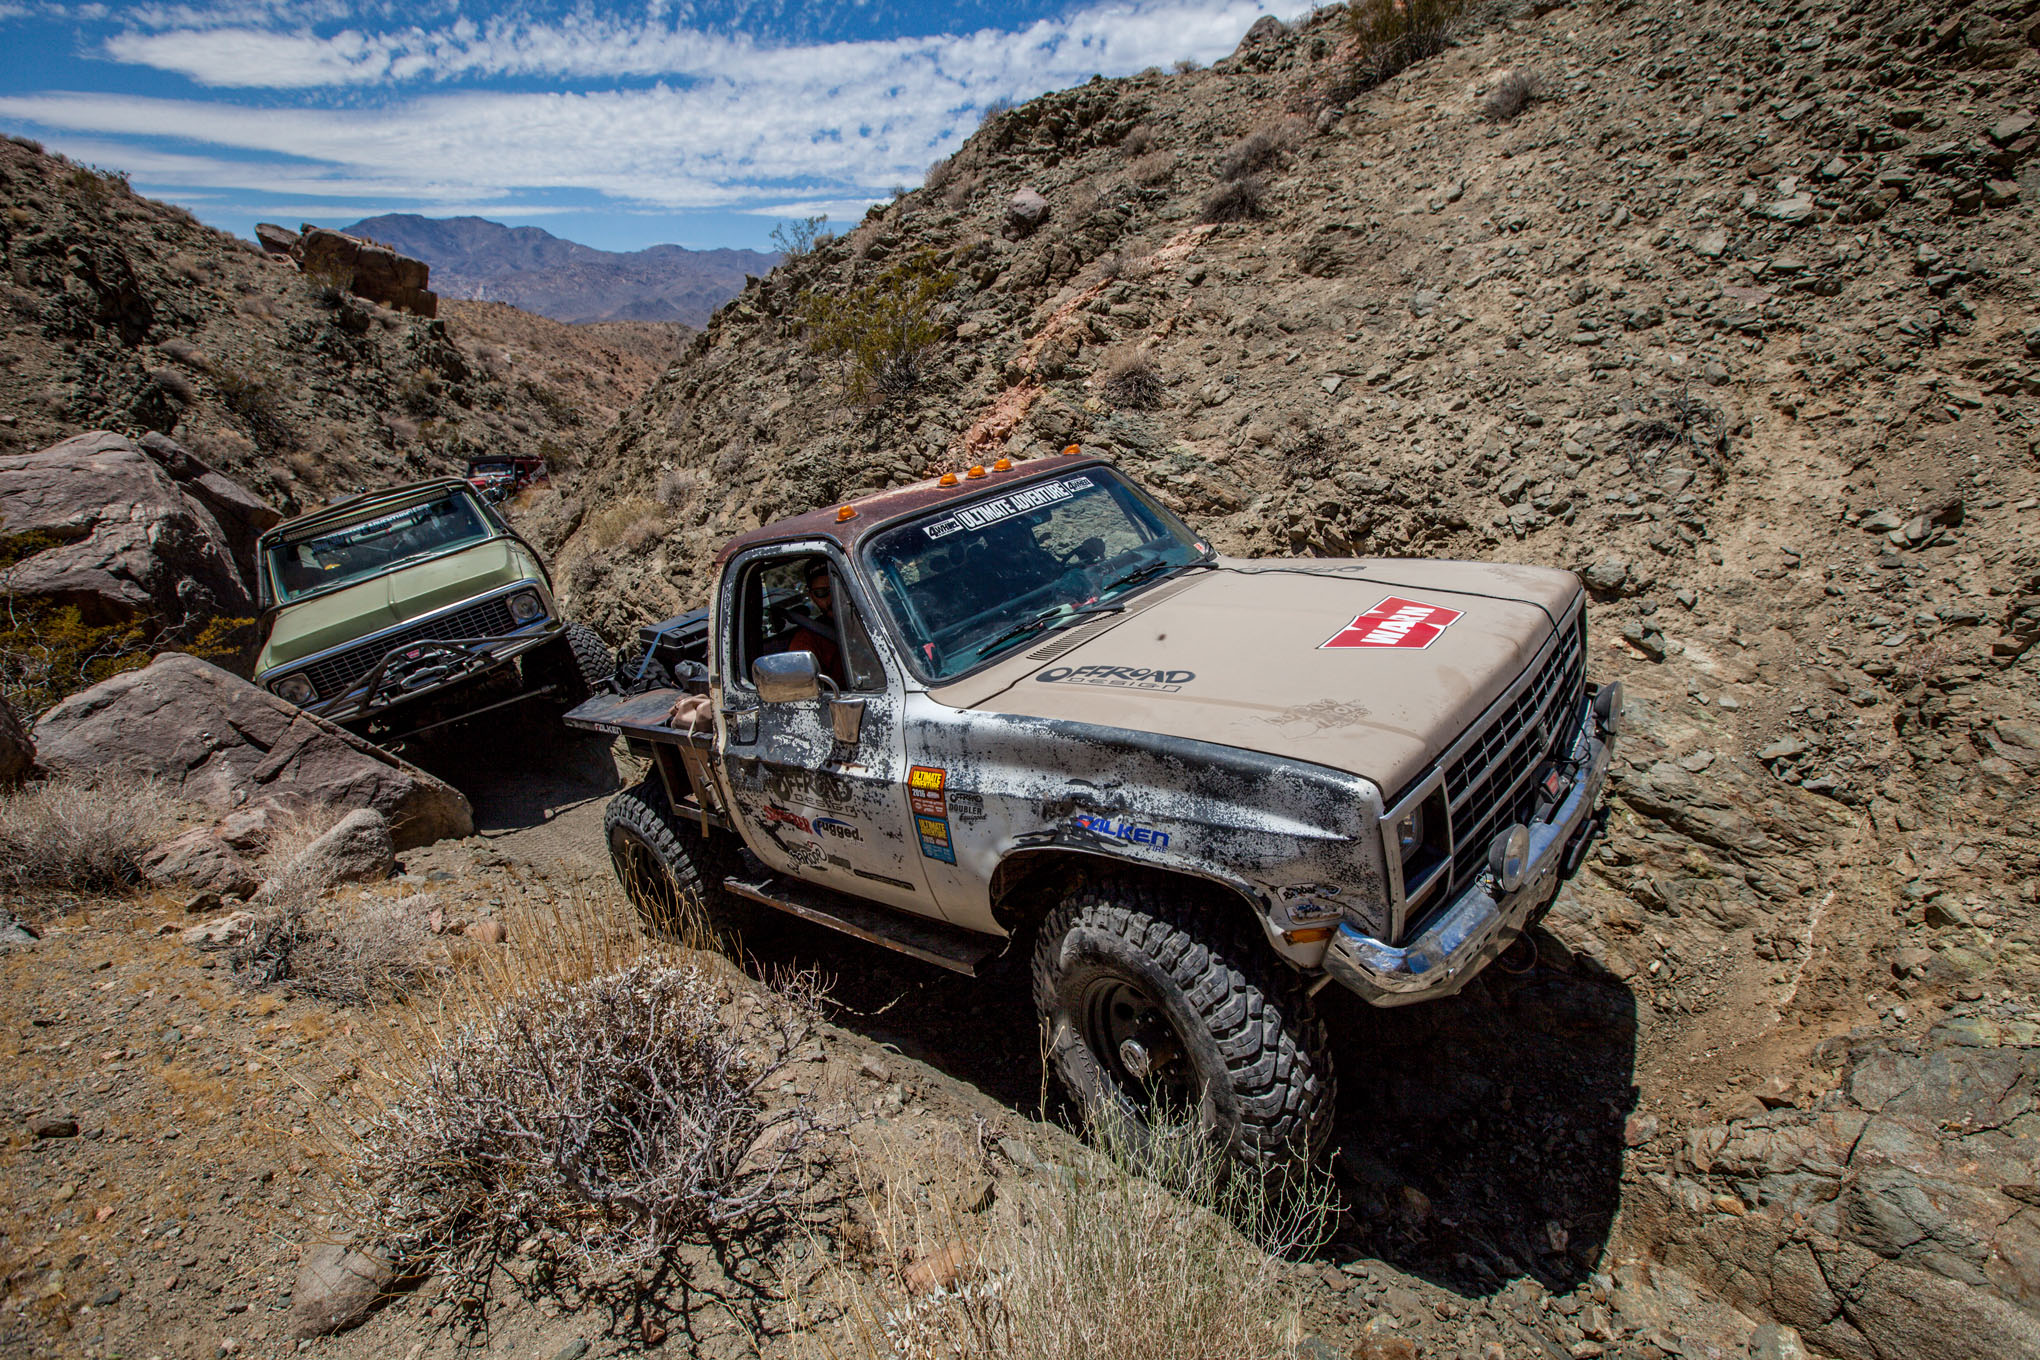 001 2016 Ultimate Adventure vehicles and people